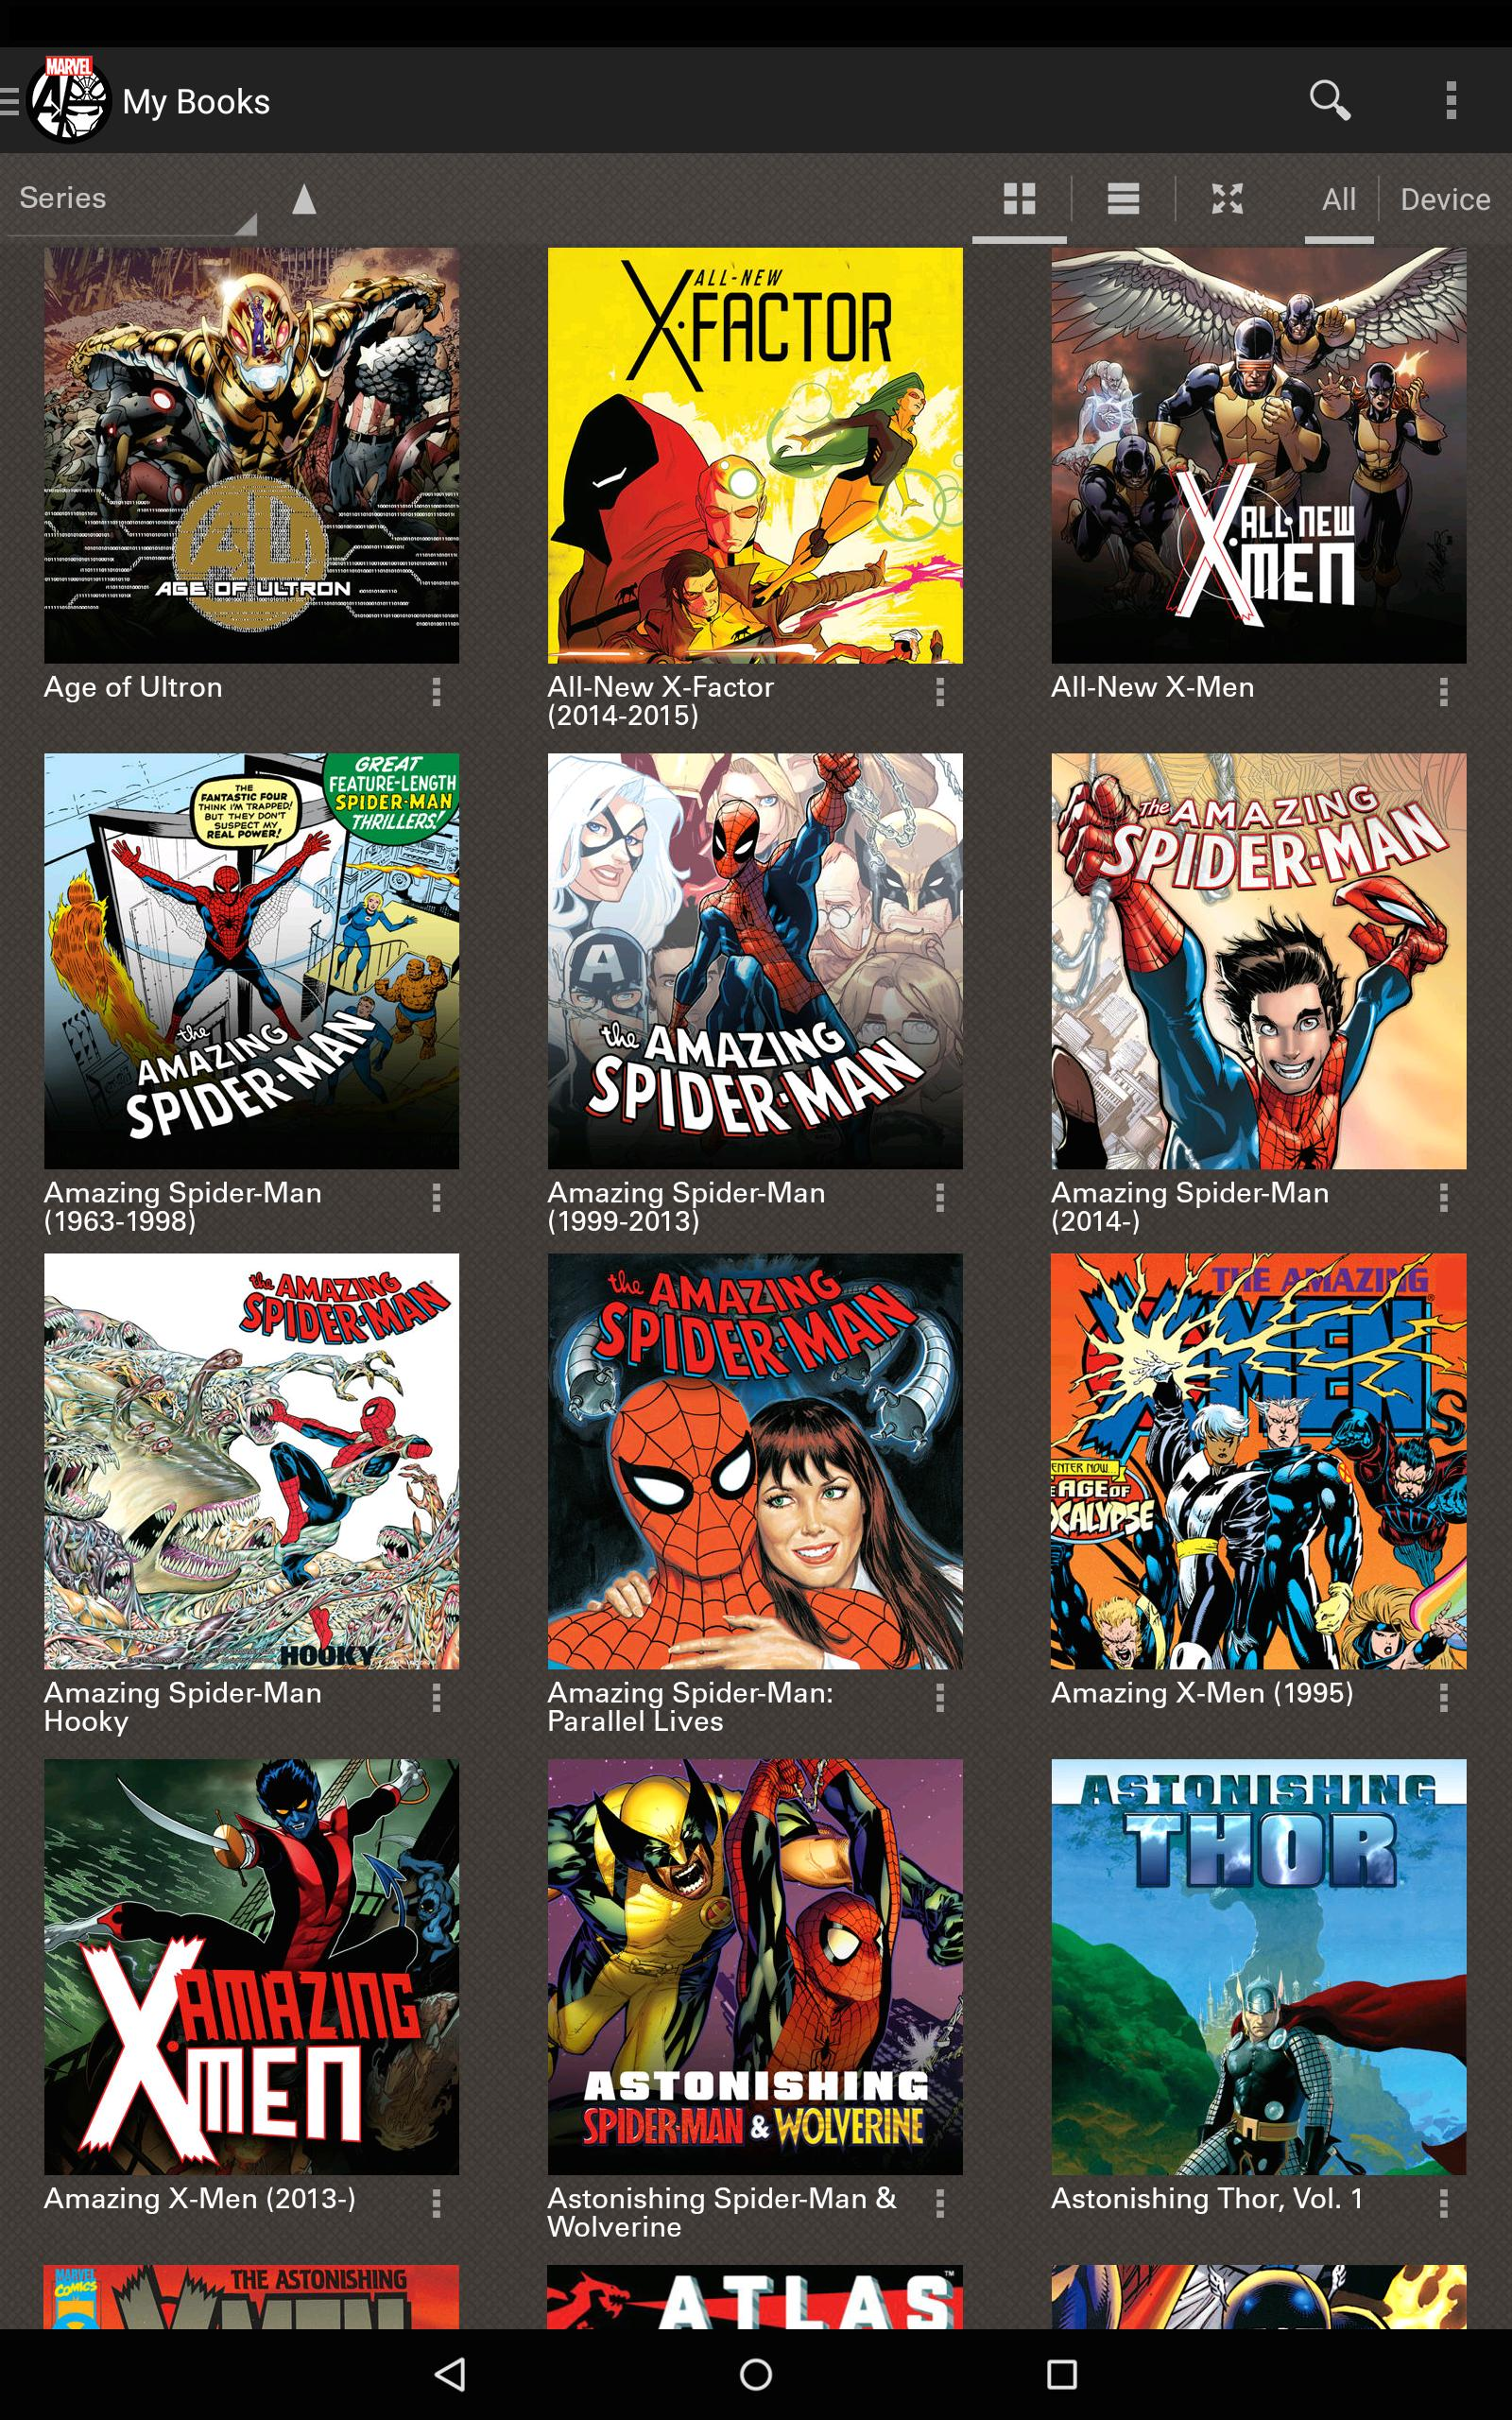 Marvel Comics 3.10.15.310399 Screenshot 9